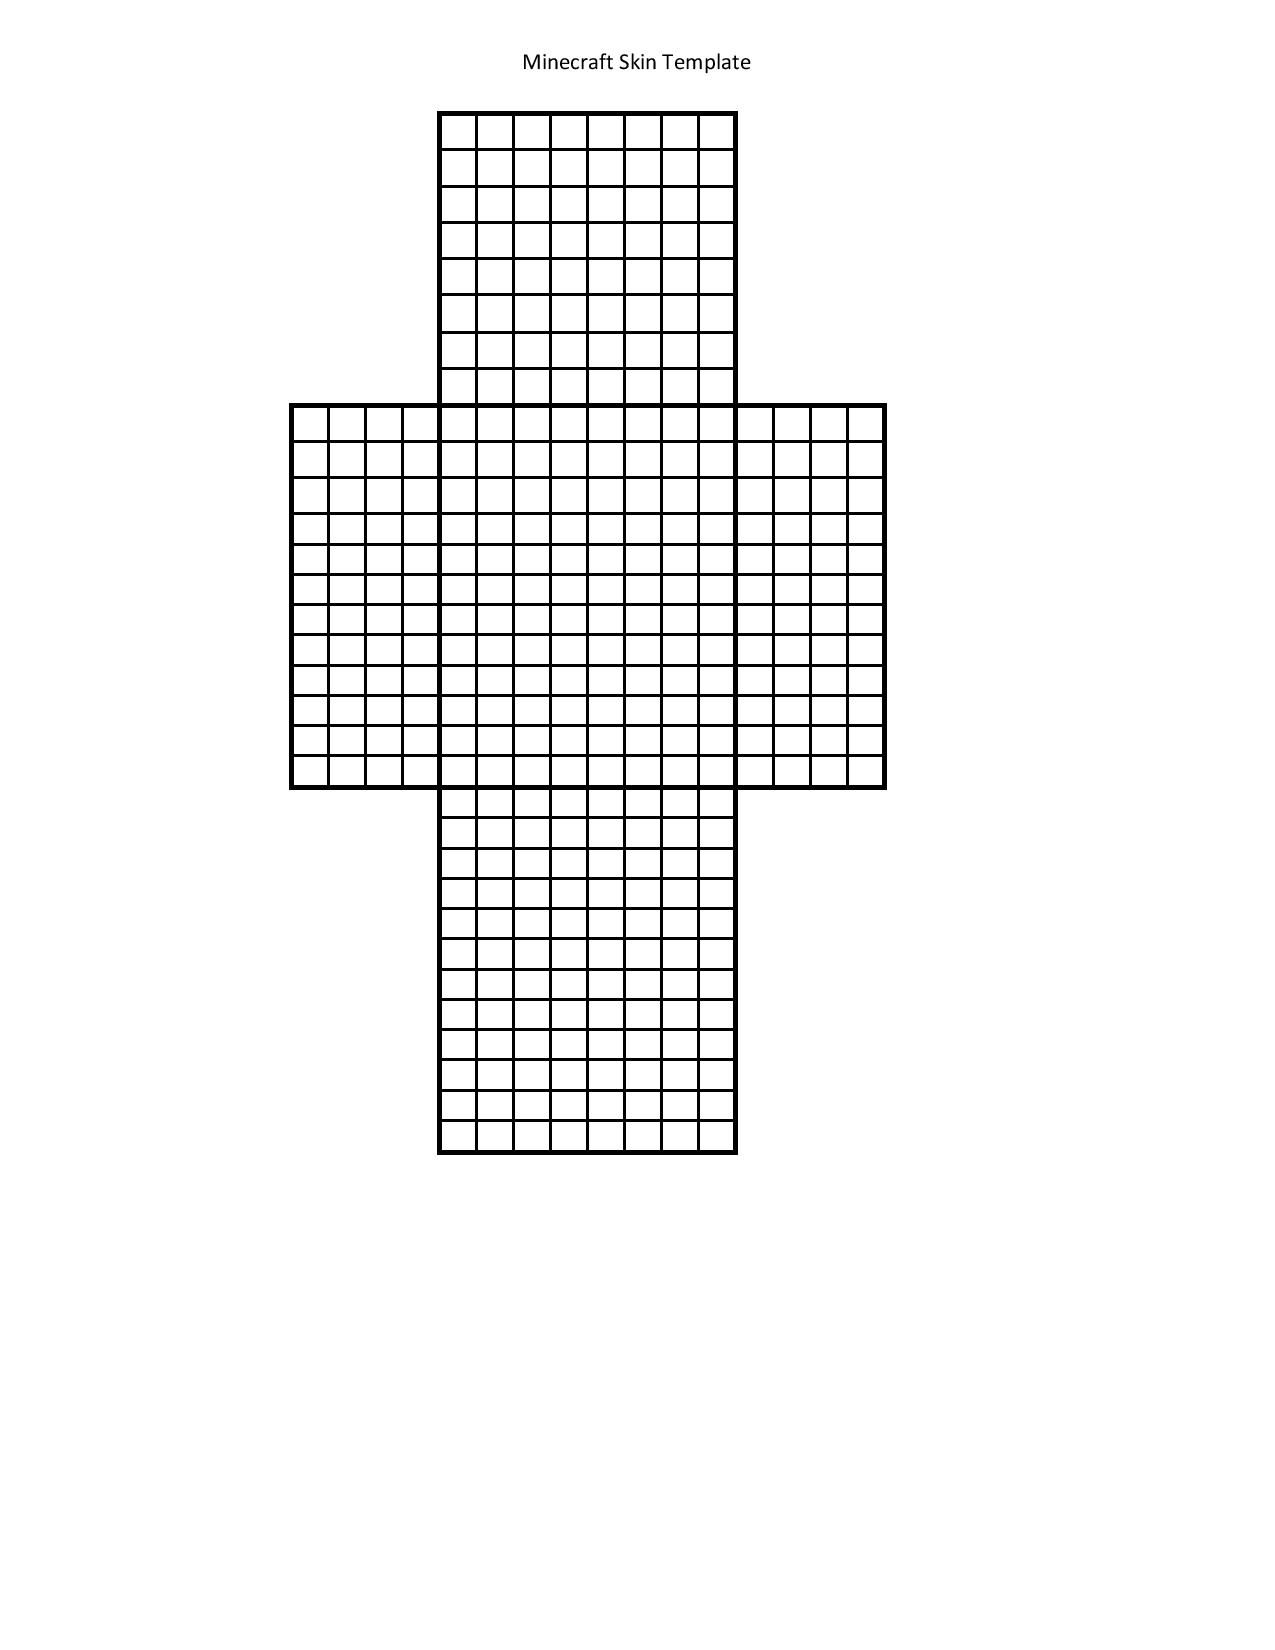 Printable Template For Minecraft Skin Creation. Use Markers With Minecraft Blank Skin Template